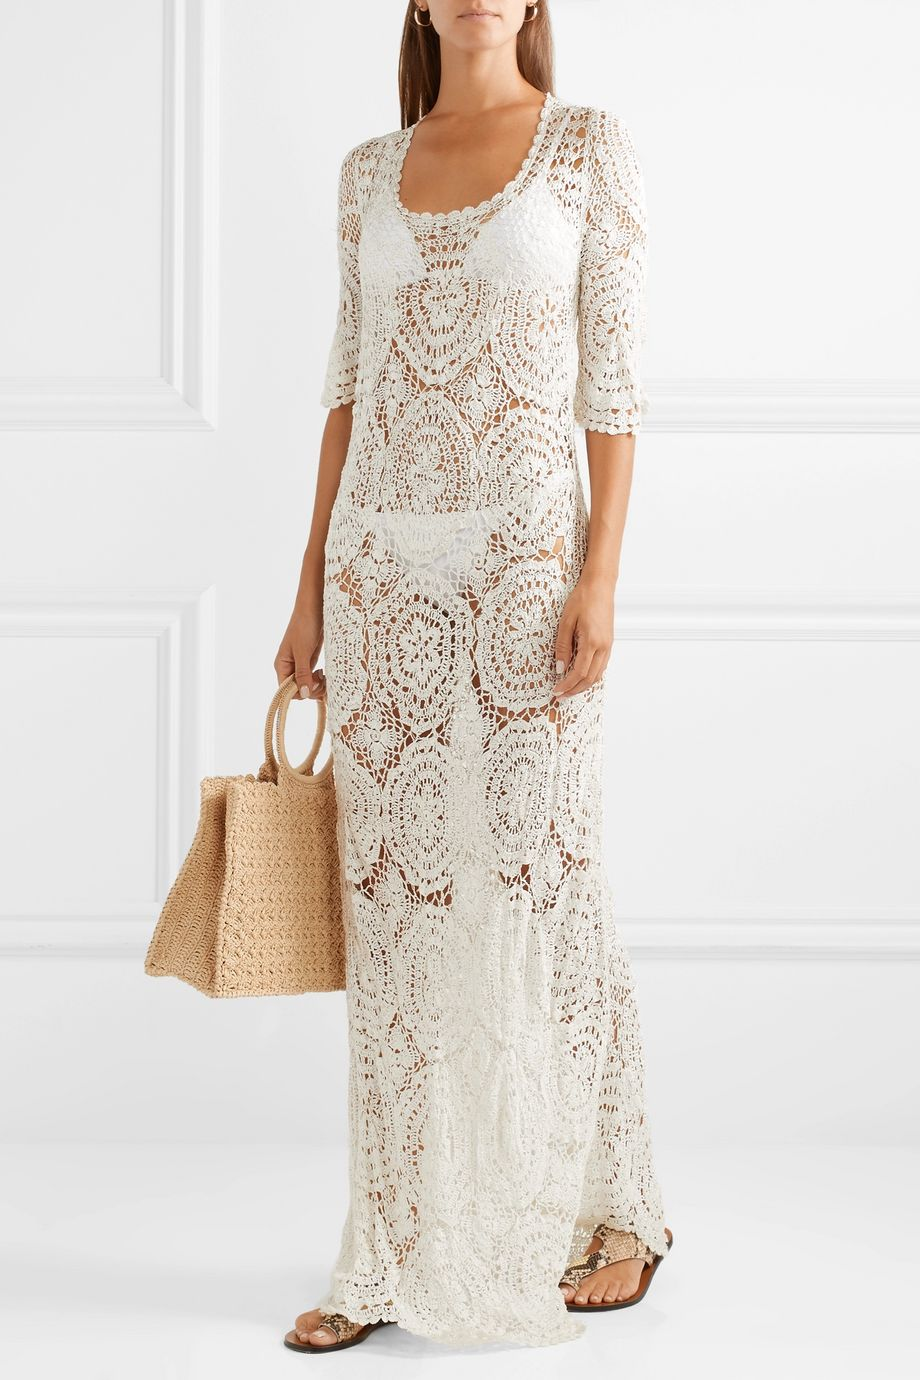 LoveShackFancy Helen crocheted lace maxi dress